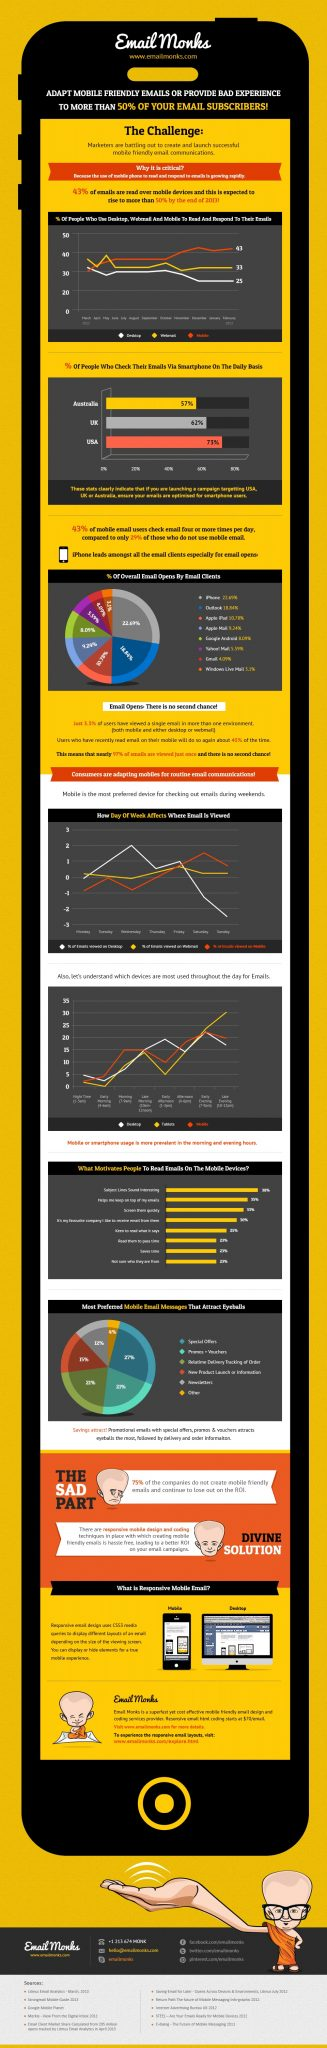 Importance of Mobile Email Infographic